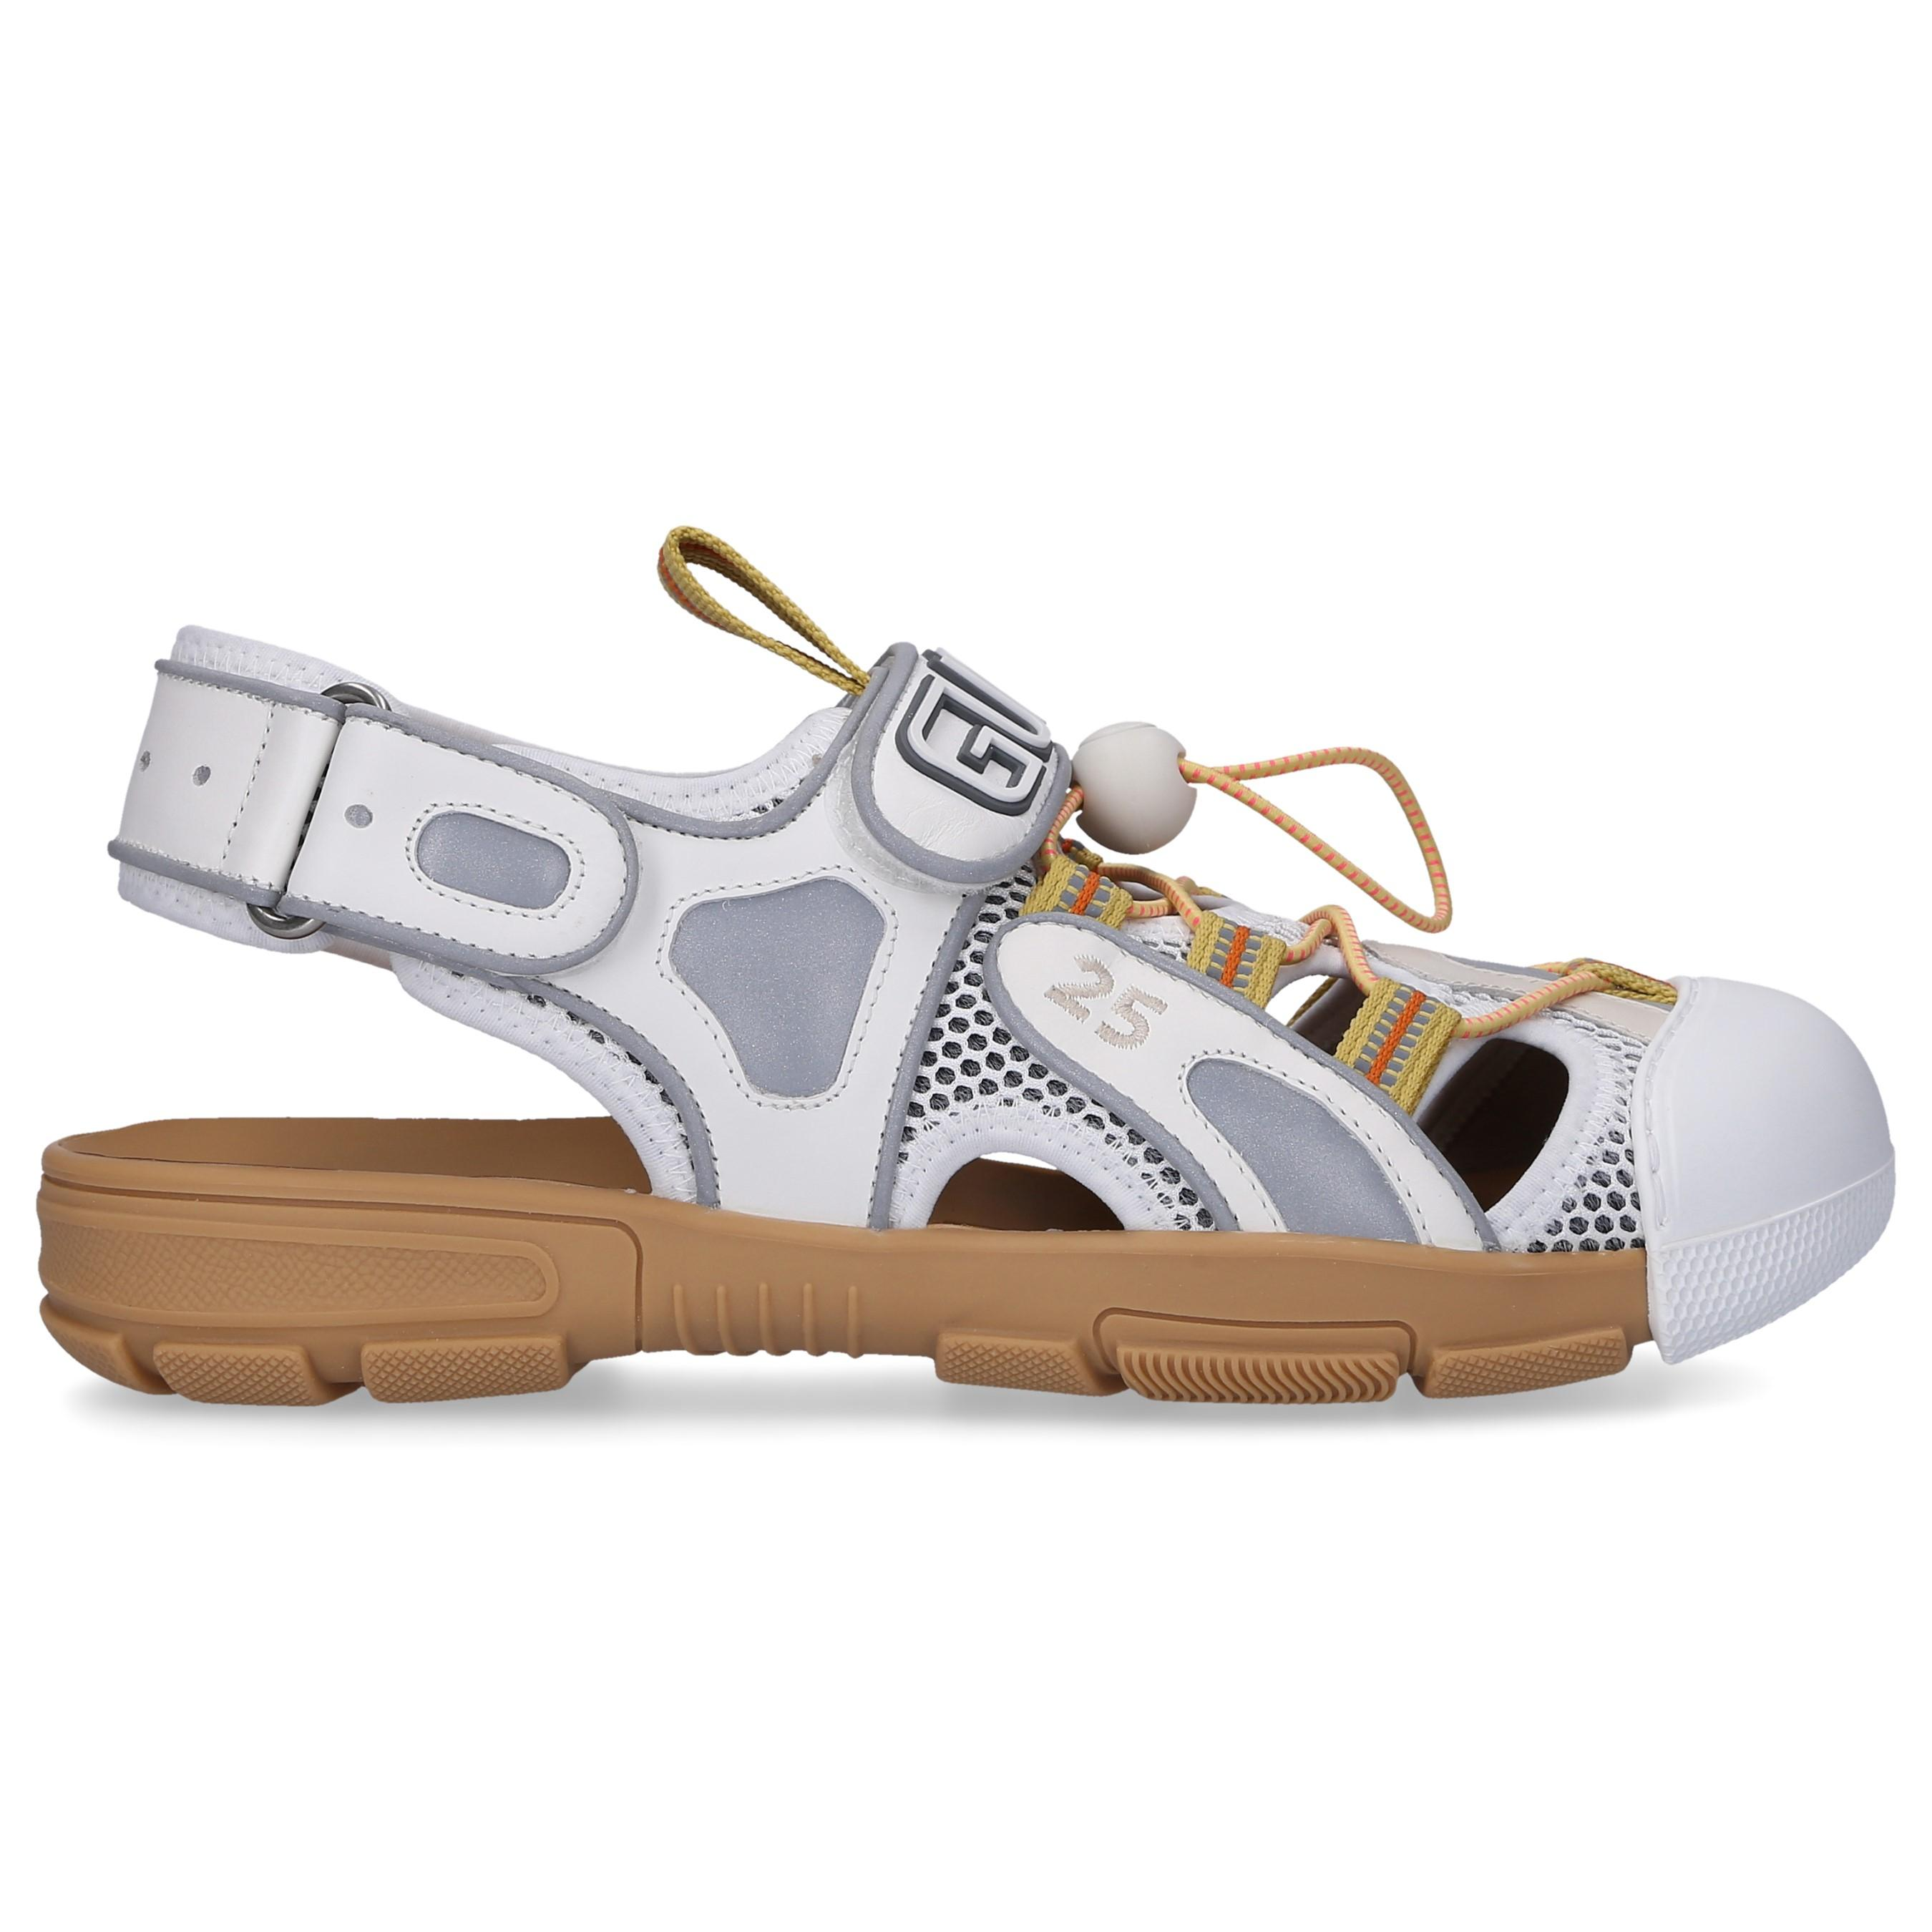 a8d9faff1 Gucci - White Tinsel Mesh And Leather Sandals - Lyst. View fullscreen